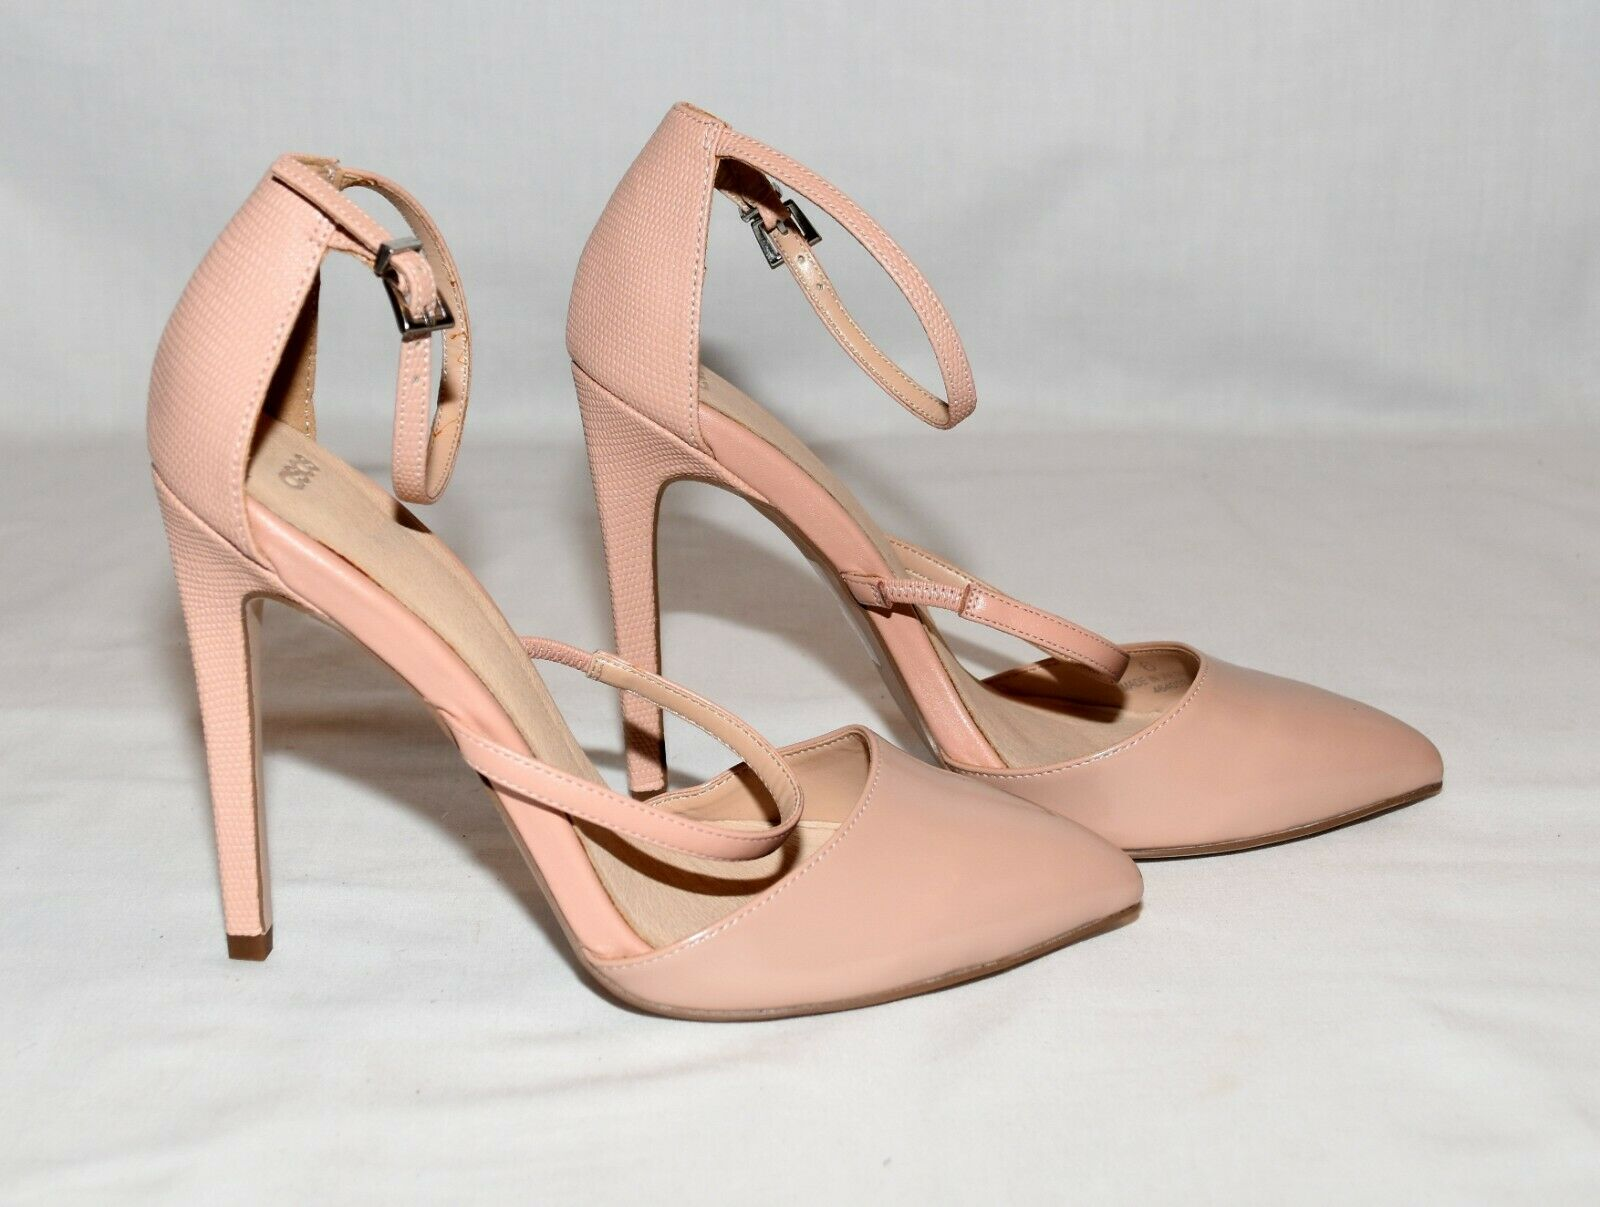 ASOS Nude Faux Patent Leather Toe Textured Leather Heels Stilettos Size 6M NWOB